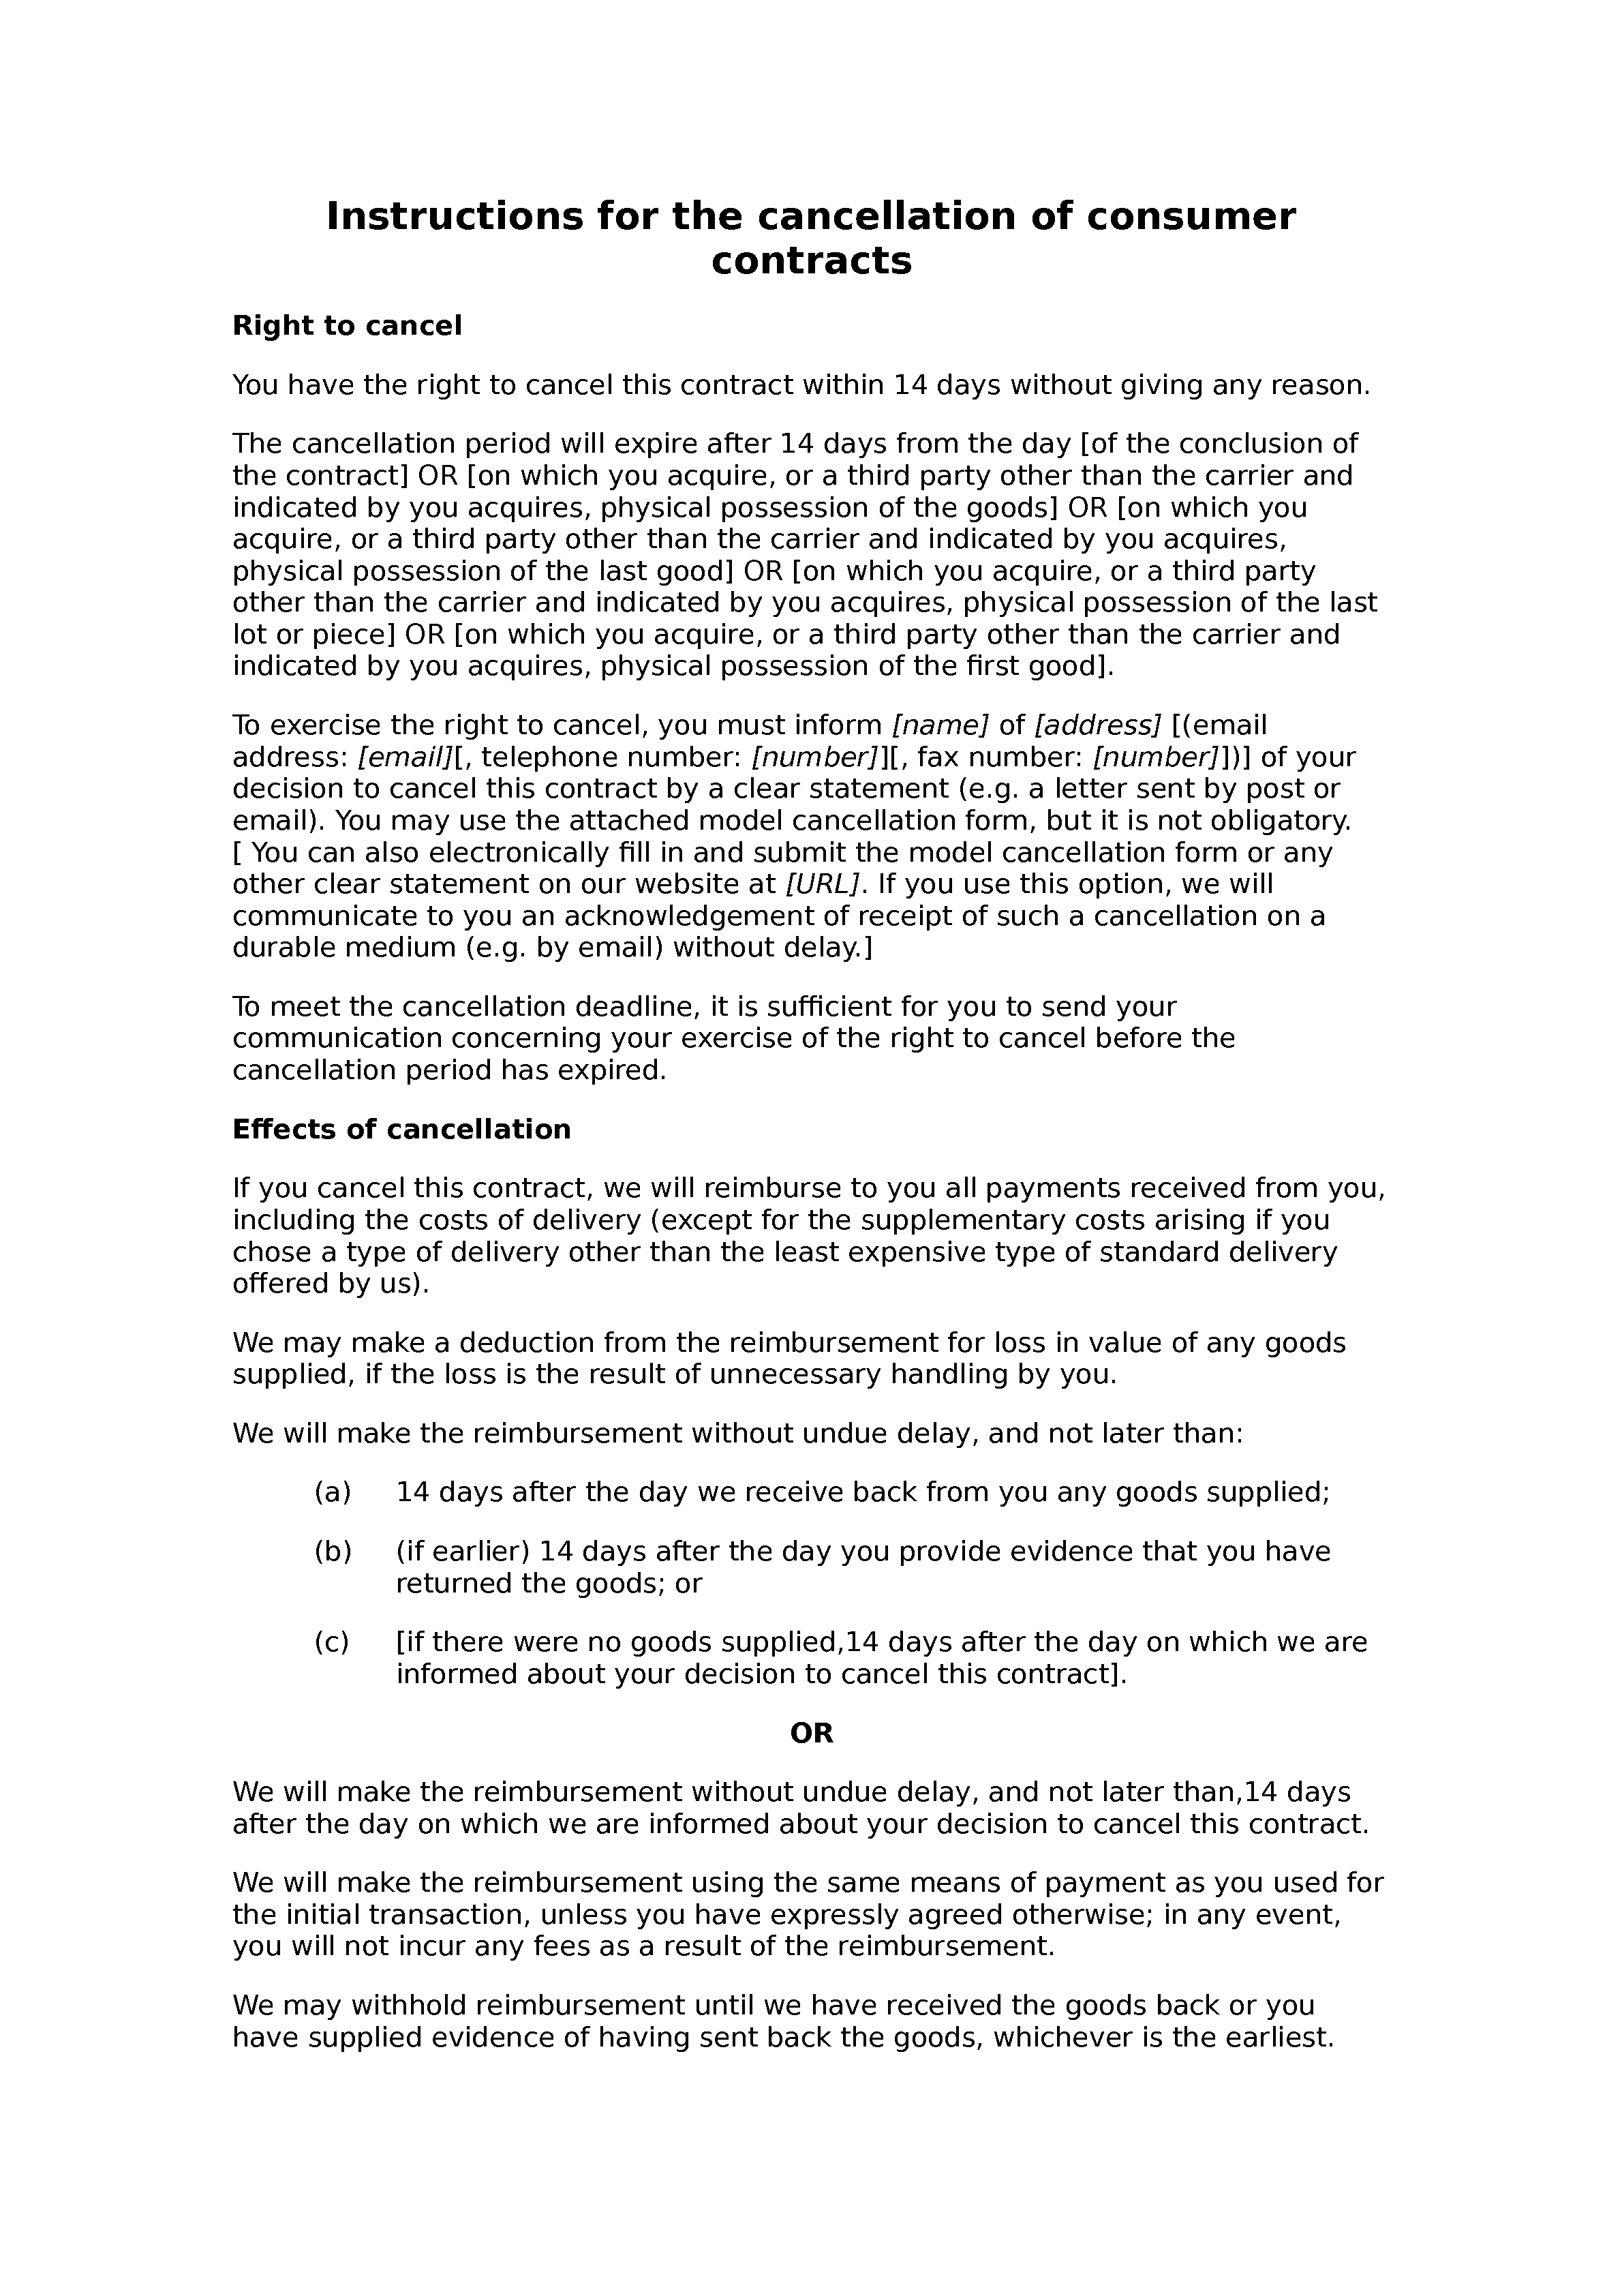 Consumer contracts model instructions for cancellation document preview